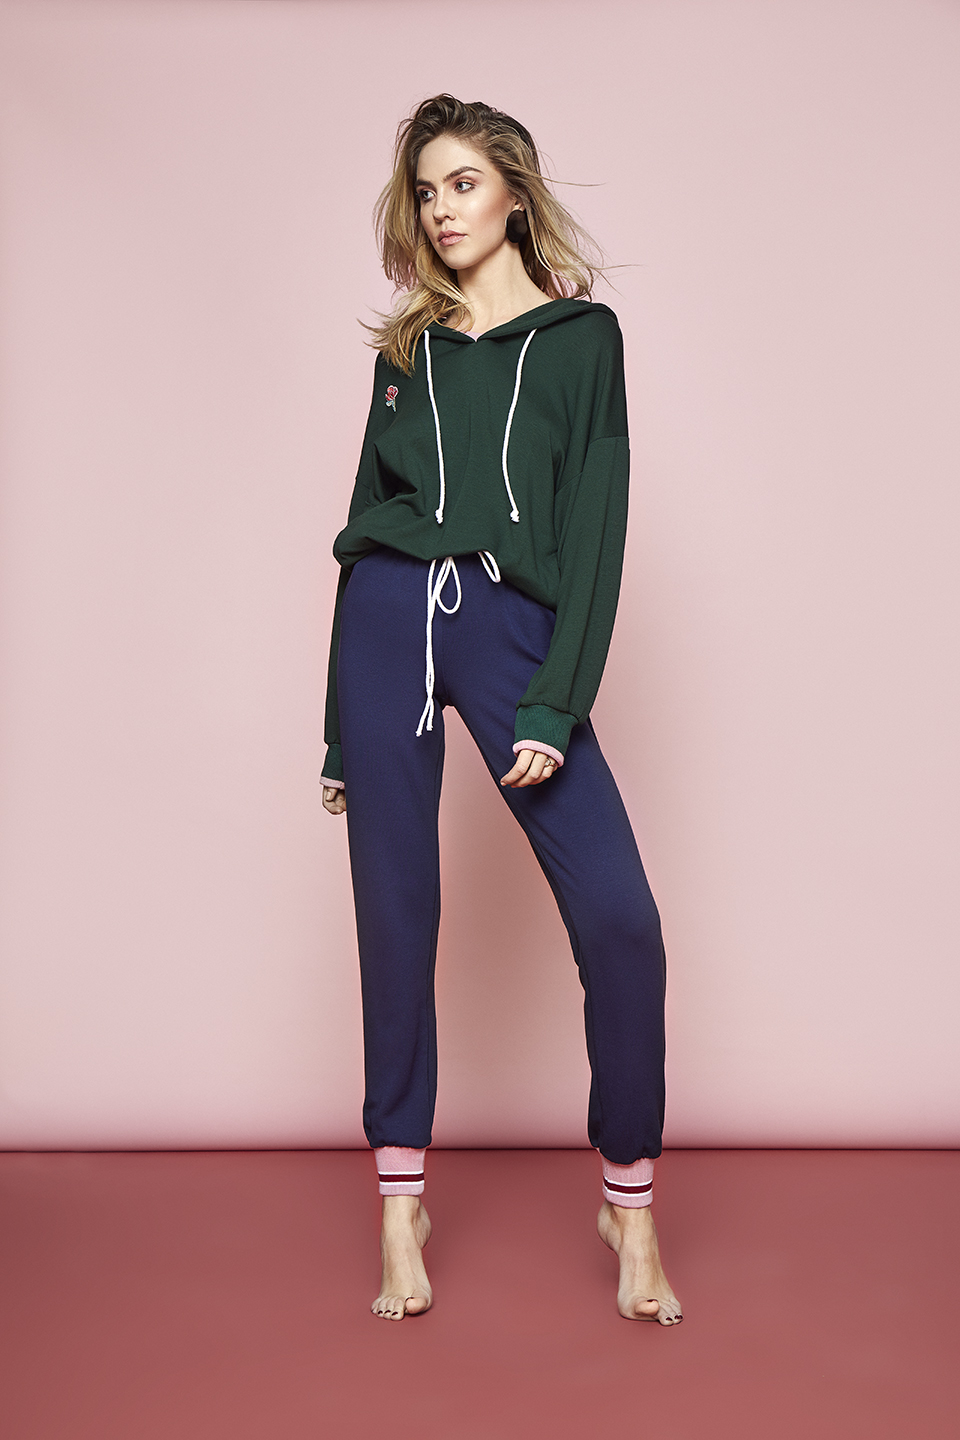 Good Vibes OZ143 Felpa con cappuccio<br />03 Dark Blue, 72 Chili, 75 Forest Green<br />Club OZ144 Pantalone<br />03 Dark Blue, 72 Chili, 75 Forest Green